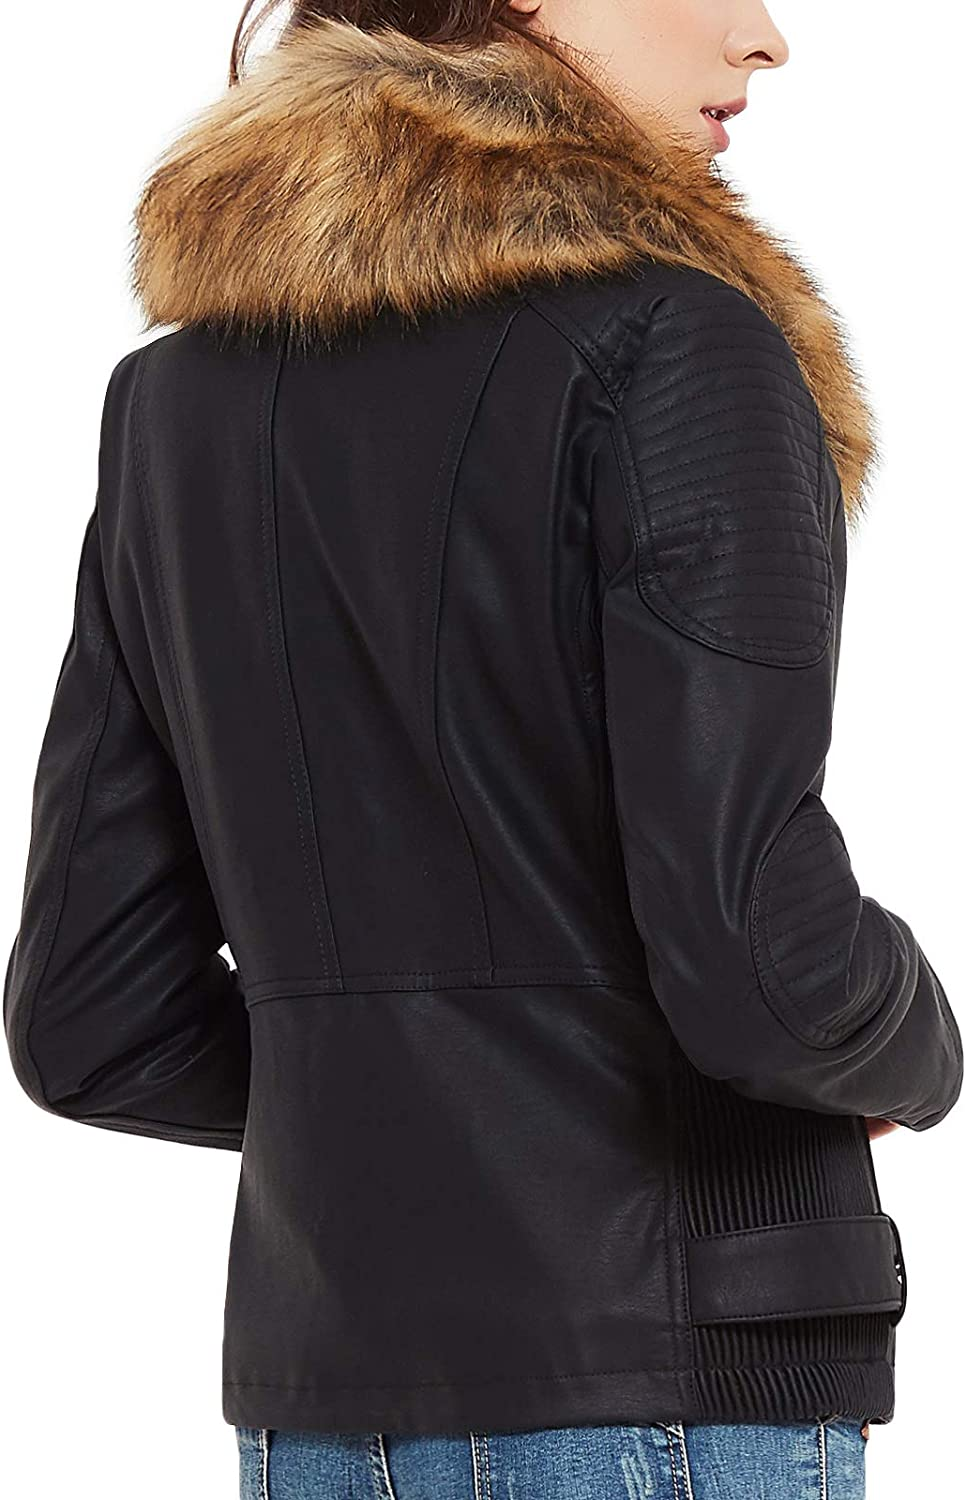 FIRST WAY Women's Faux Leather Jacket with Pockets Fur Lining Moto Biker Short Coat Slim Fit PU Outwear for Fall and Winter